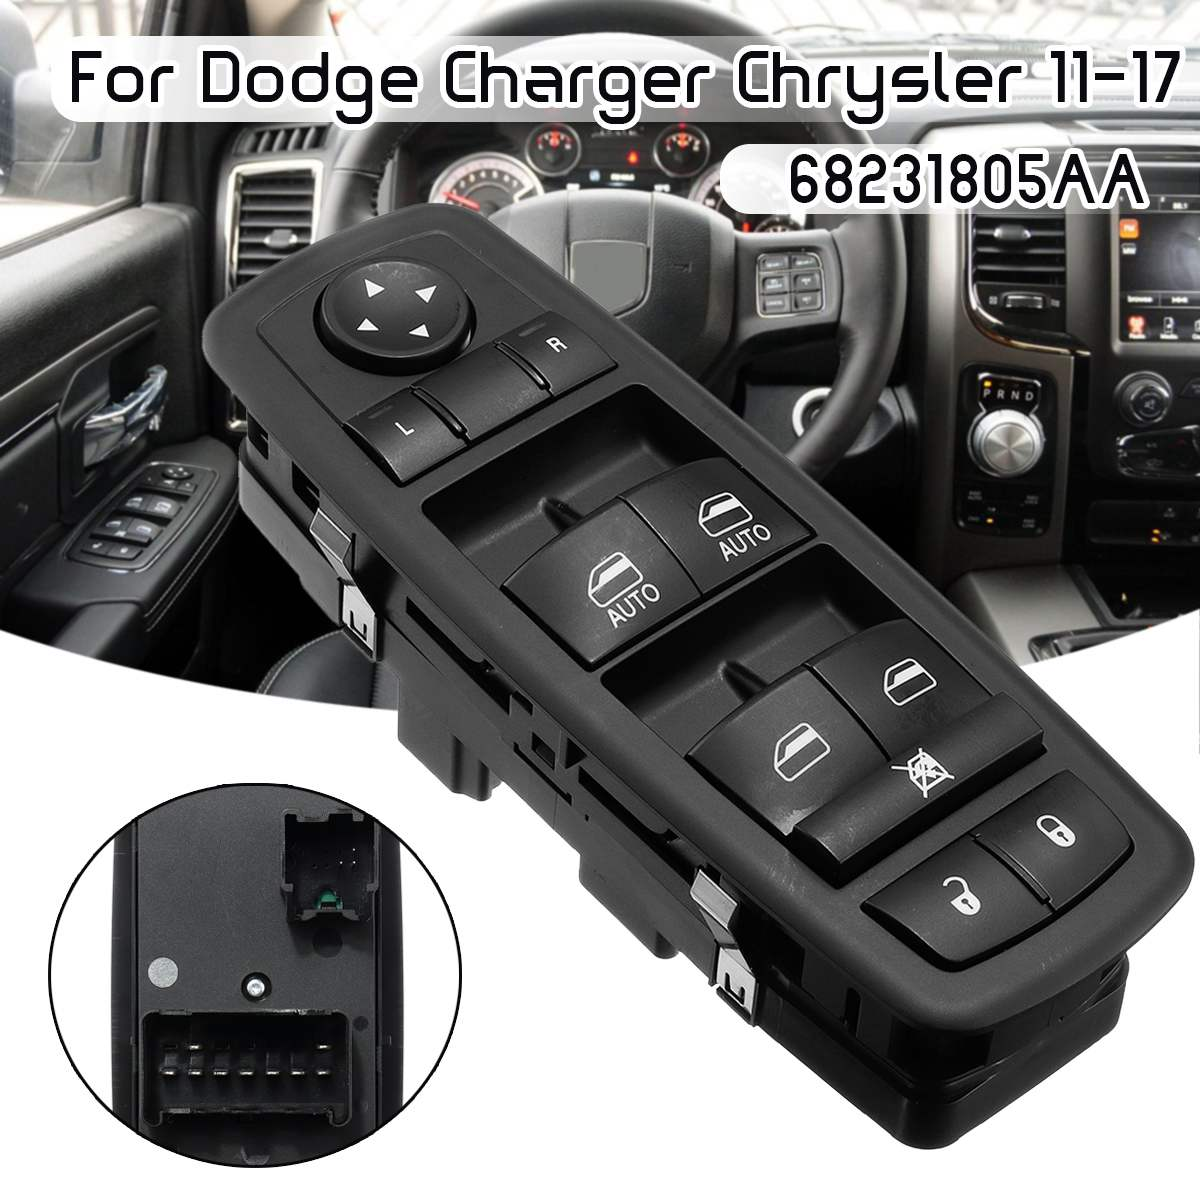 Master Window Switch Front Left 68231805AA For Dodge Charger Chrysler 2011-2017